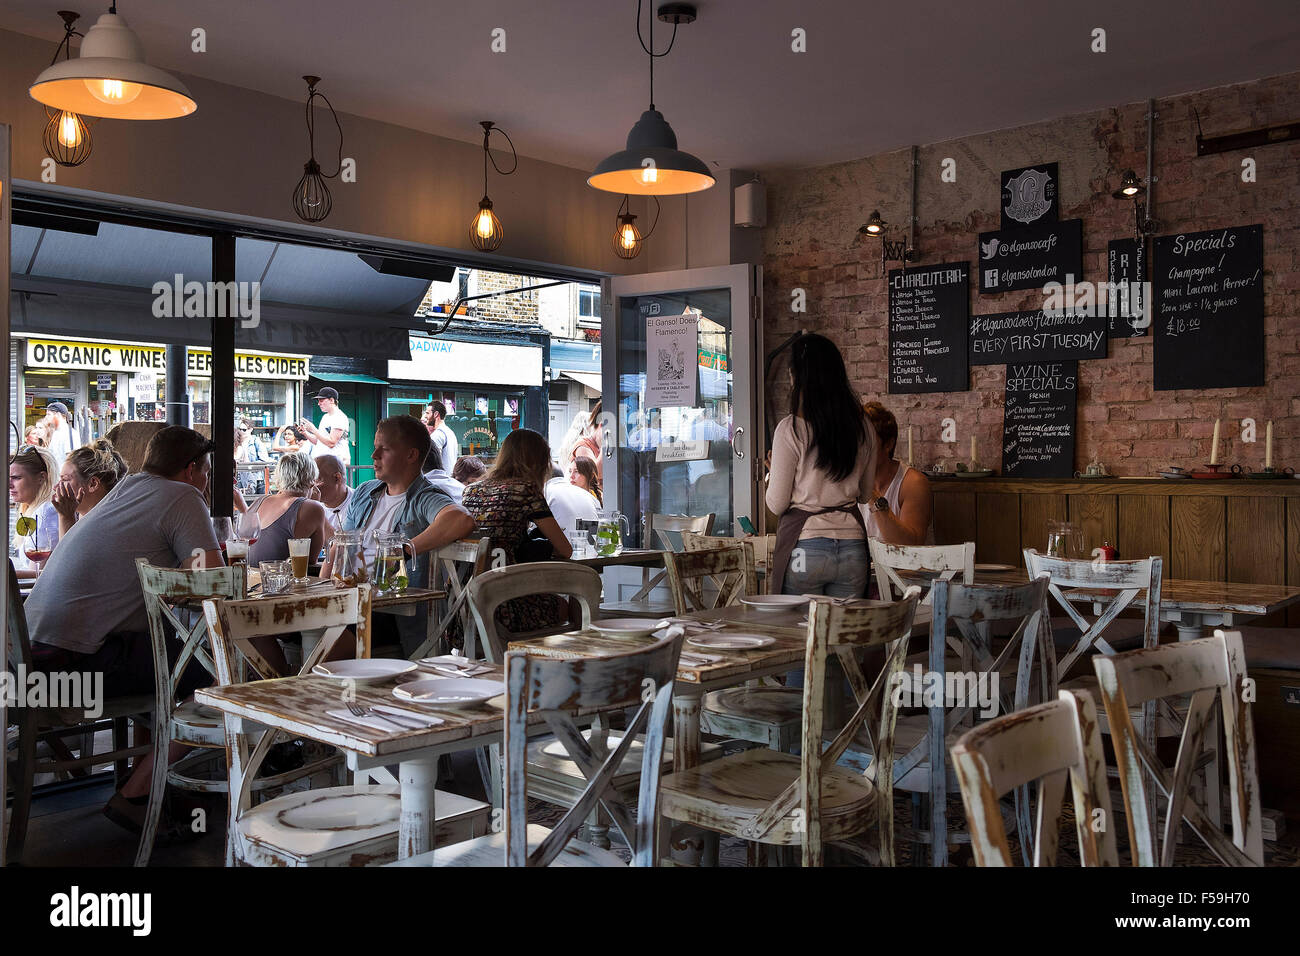 Broadway Market, London E8: El Ganso Spanish tapas restaurant - Stock Image